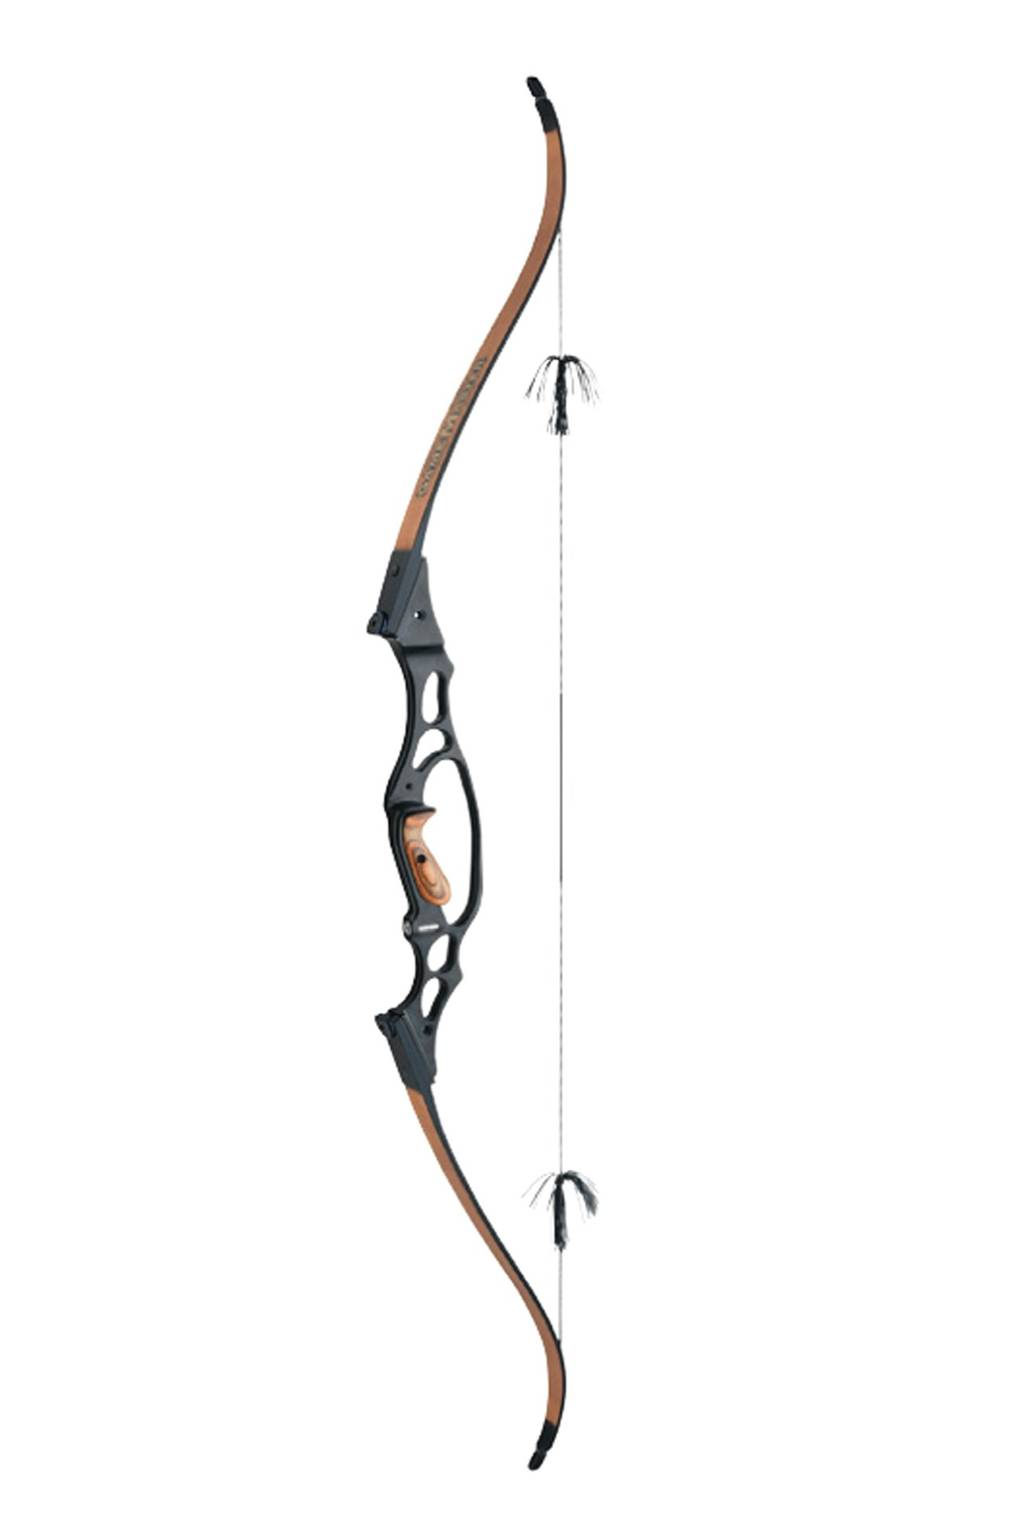 Fetish points and shoots: Best archery bows | WIRED UK